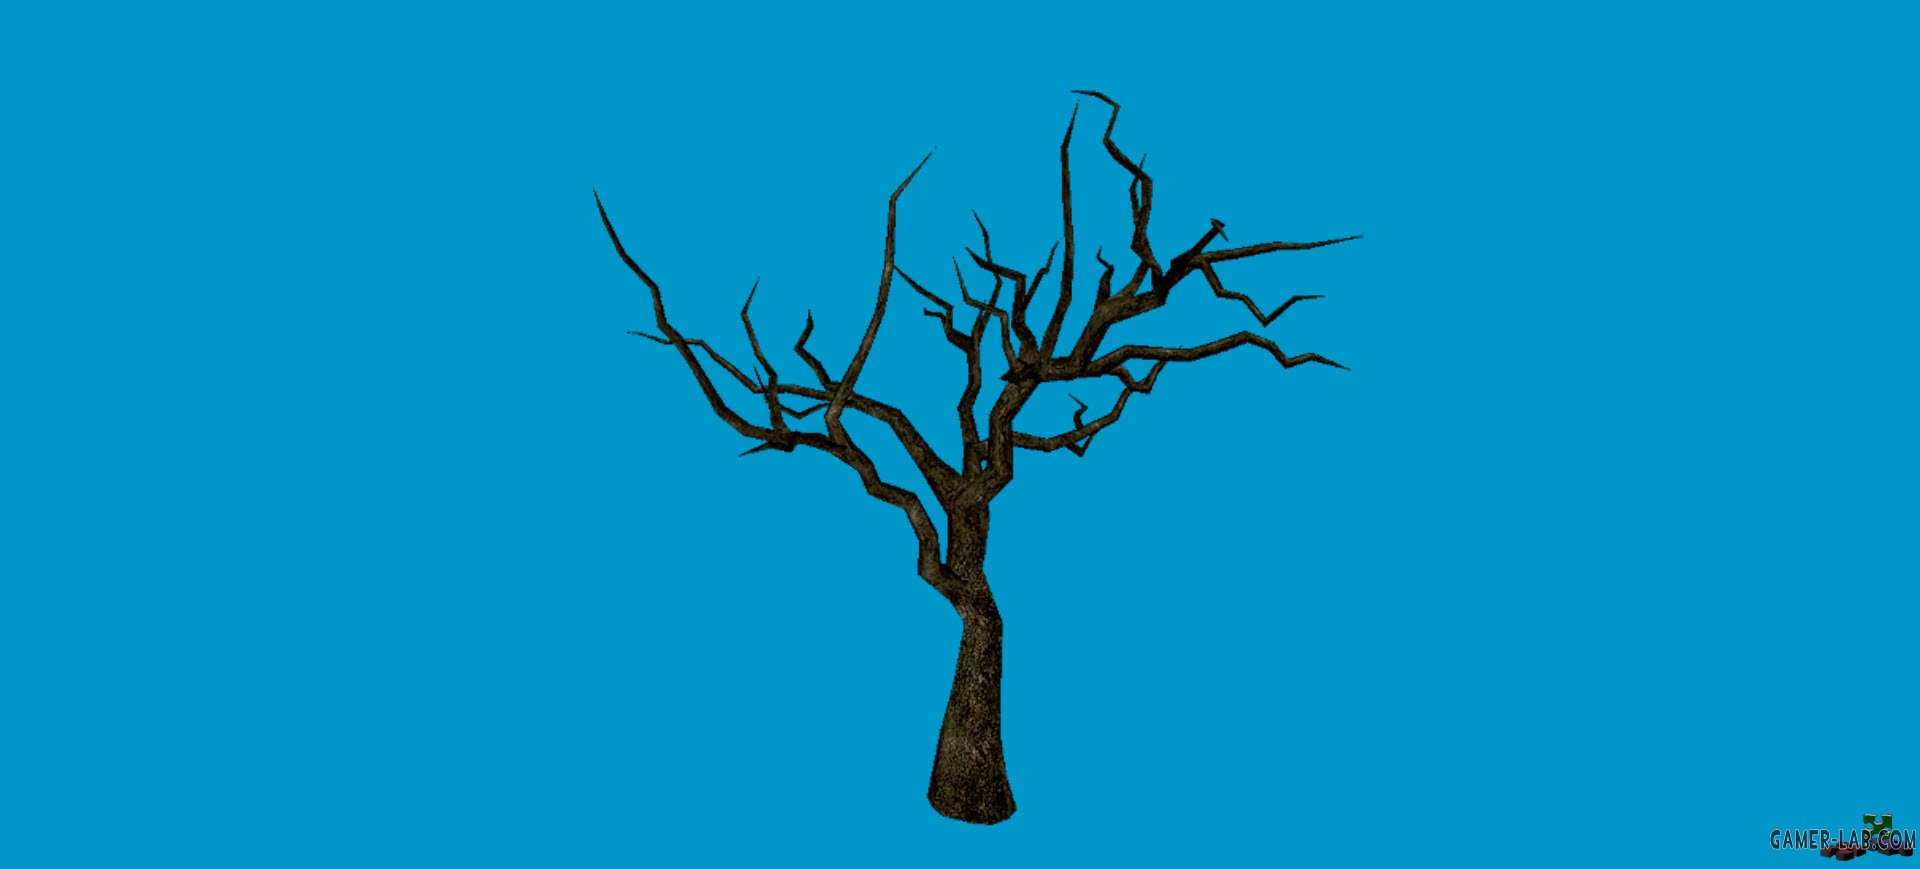 jn_eviltree_01_02_bb